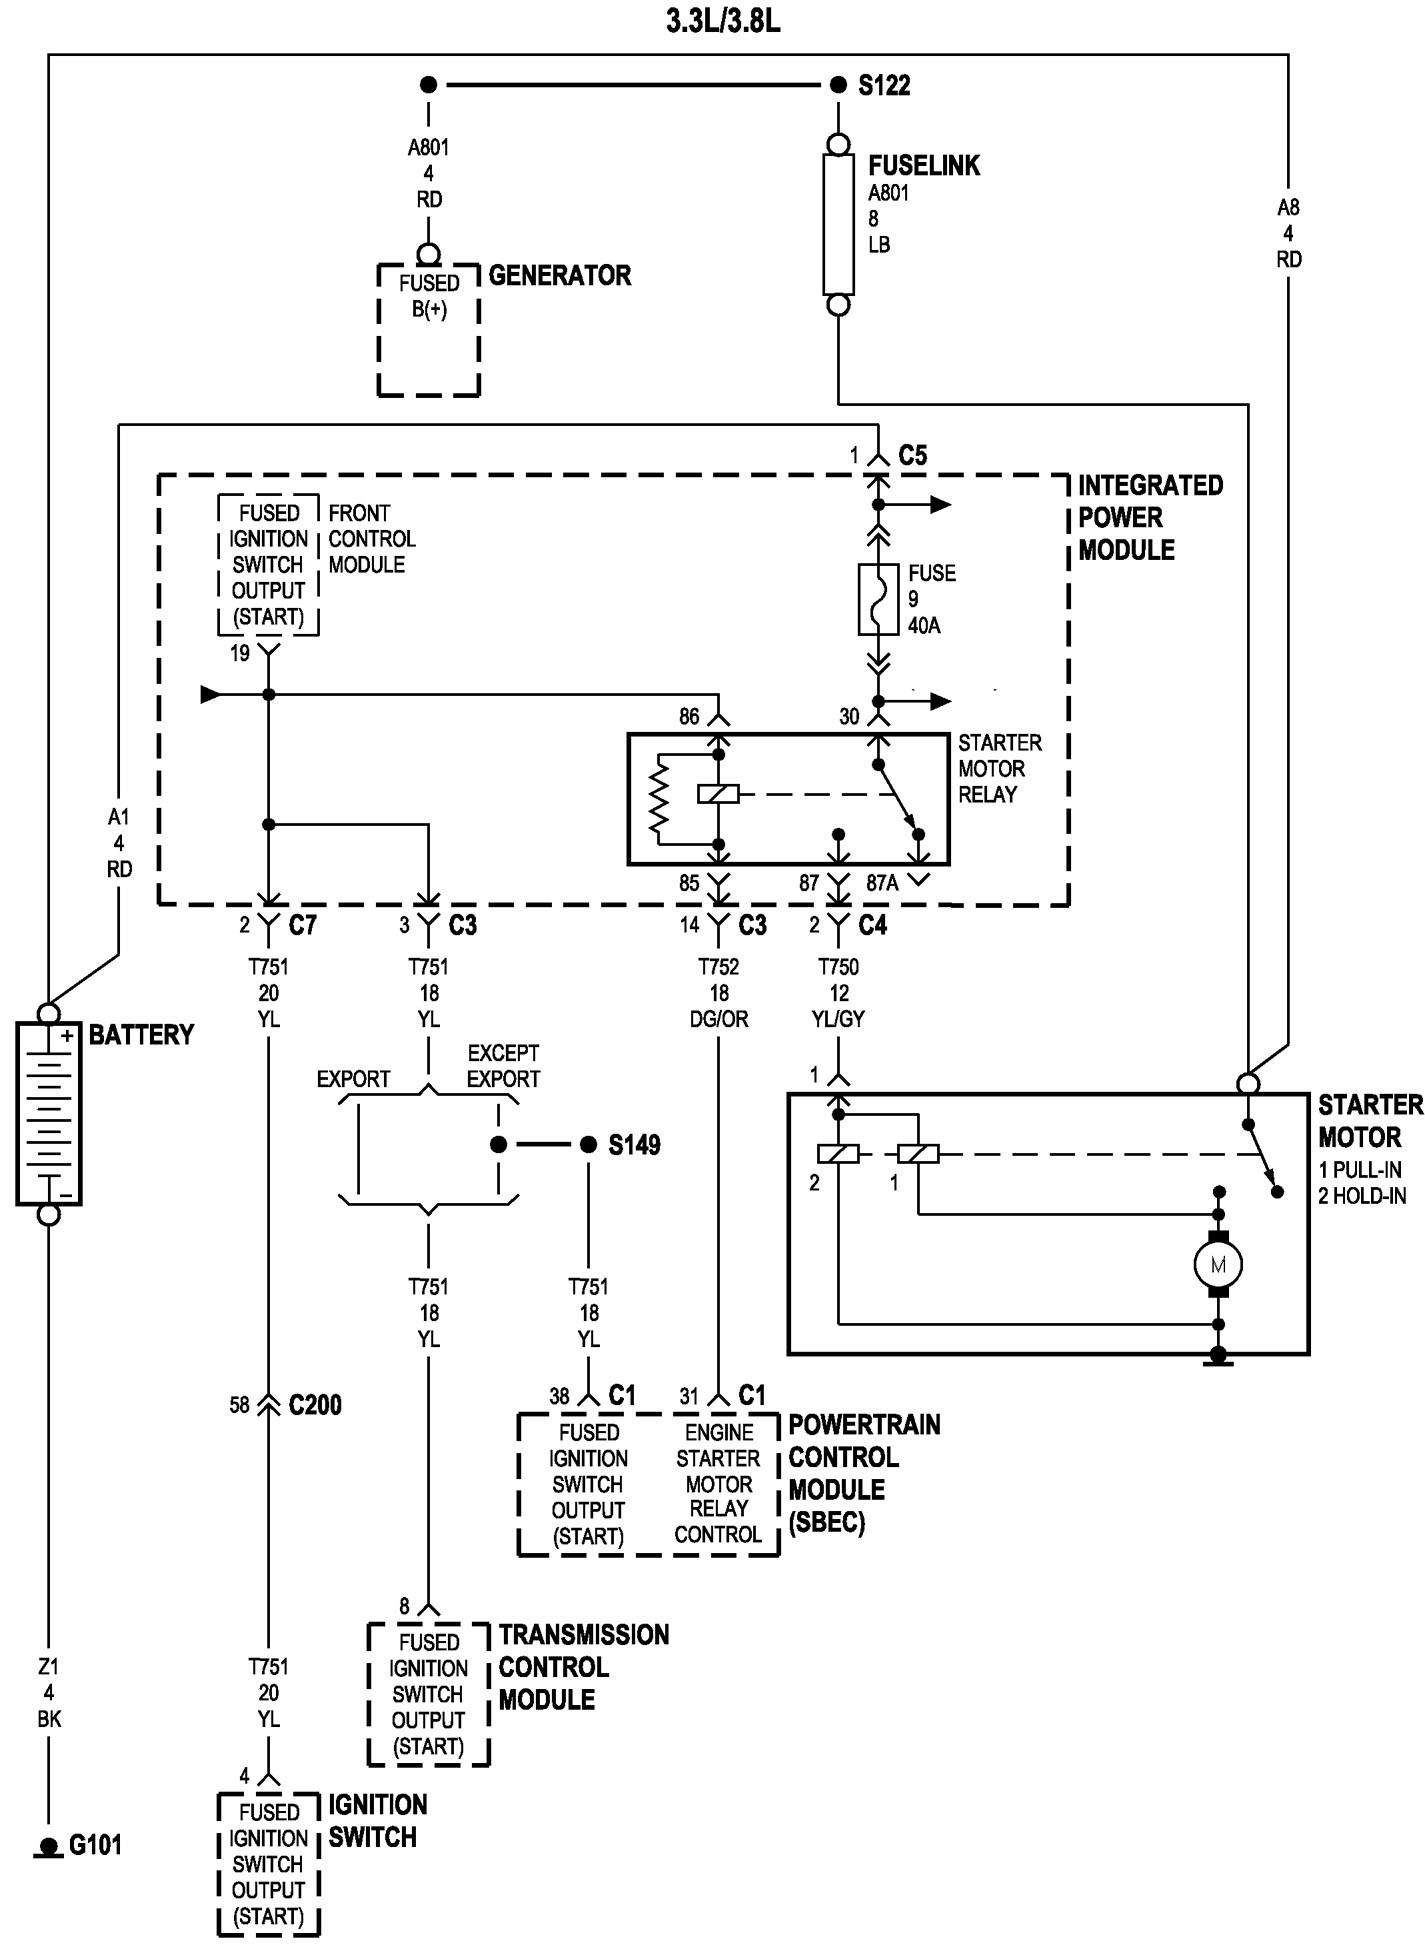 Dodge Caravan Engine Diagram Dodge Caravan Ac Wiring Wiring Diagram Of Dodge Caravan Engine Diagram